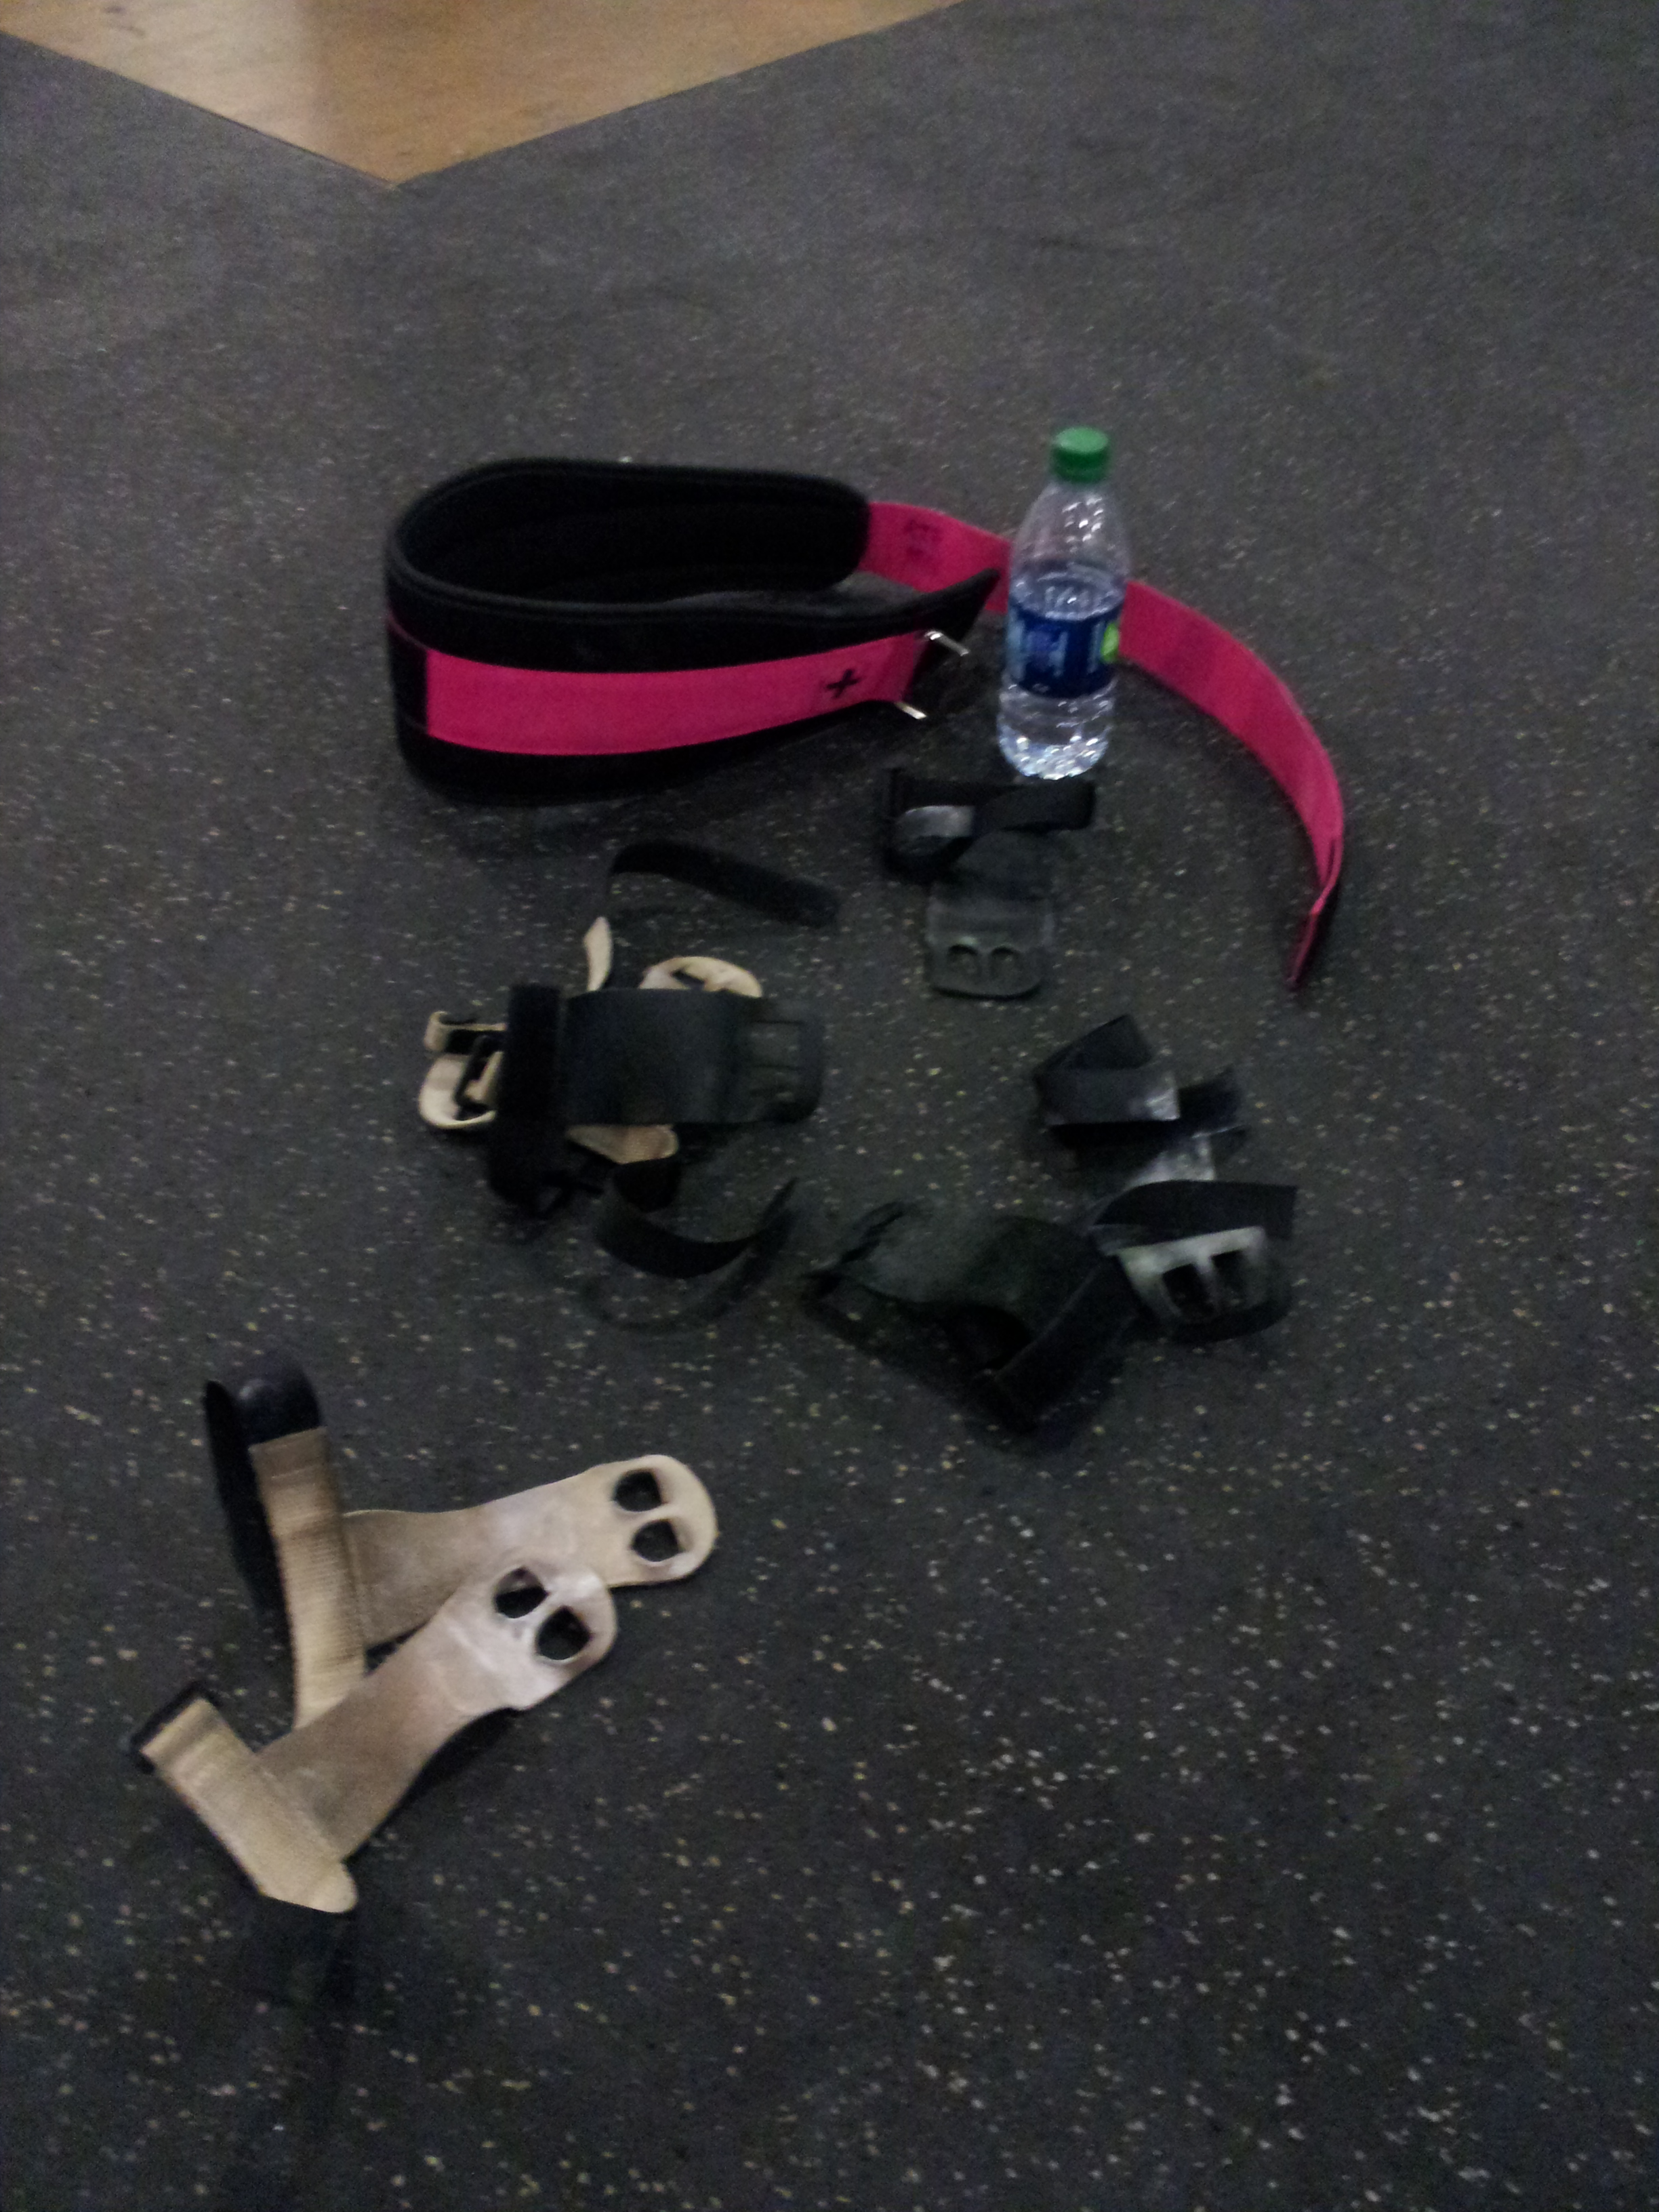 Respect your gym, respect yourself...put your junk away after class